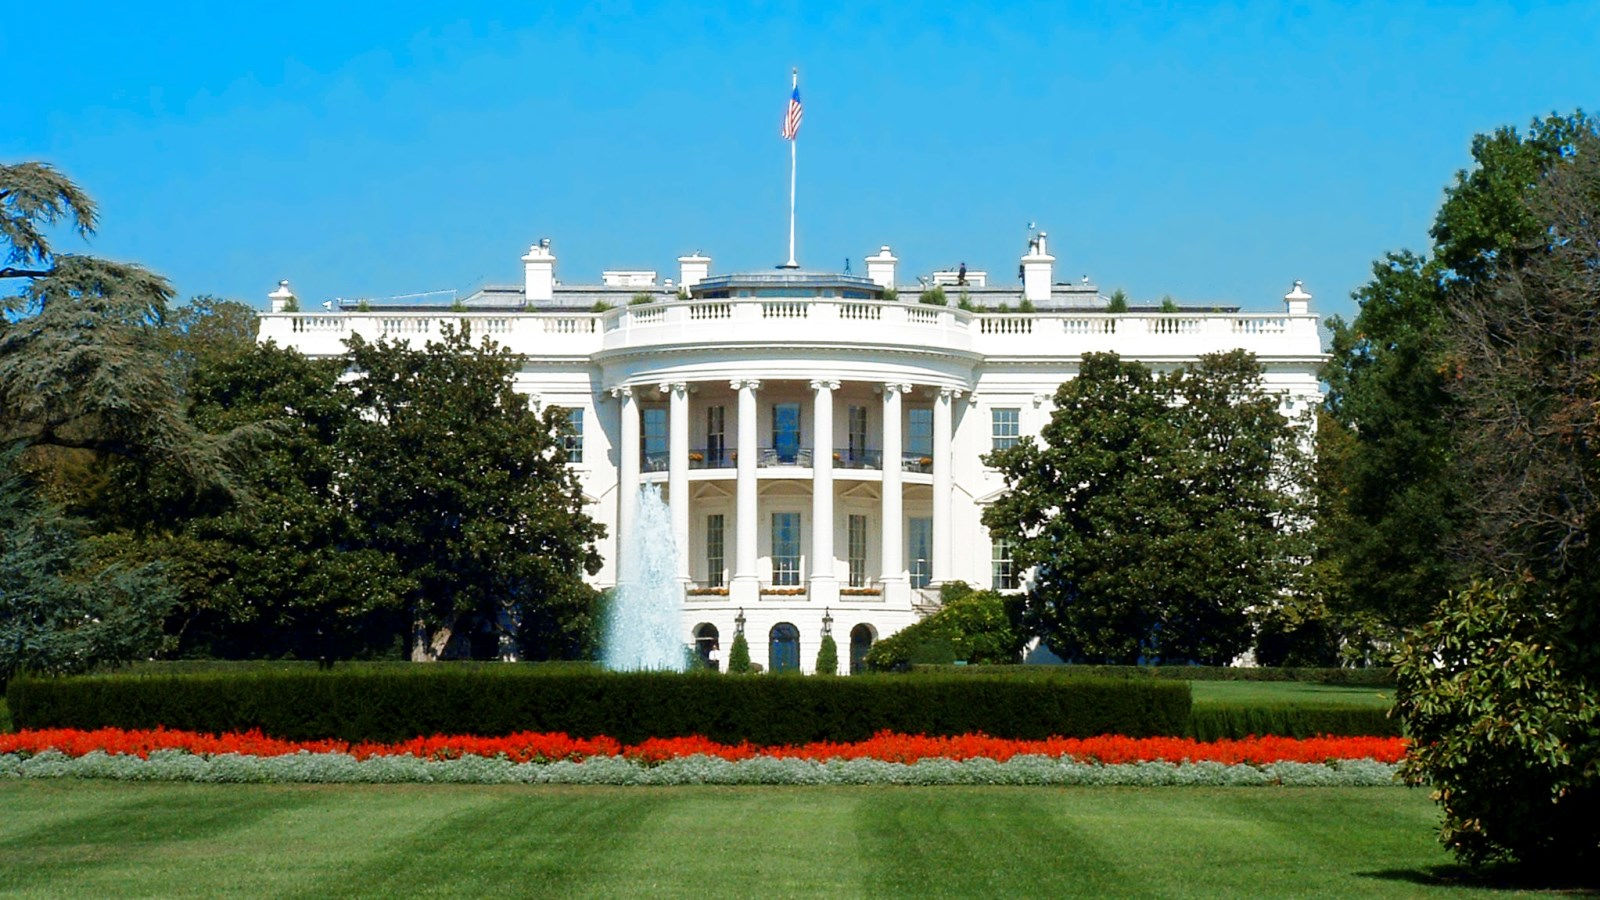 Things to do in College Park, MD - The White House